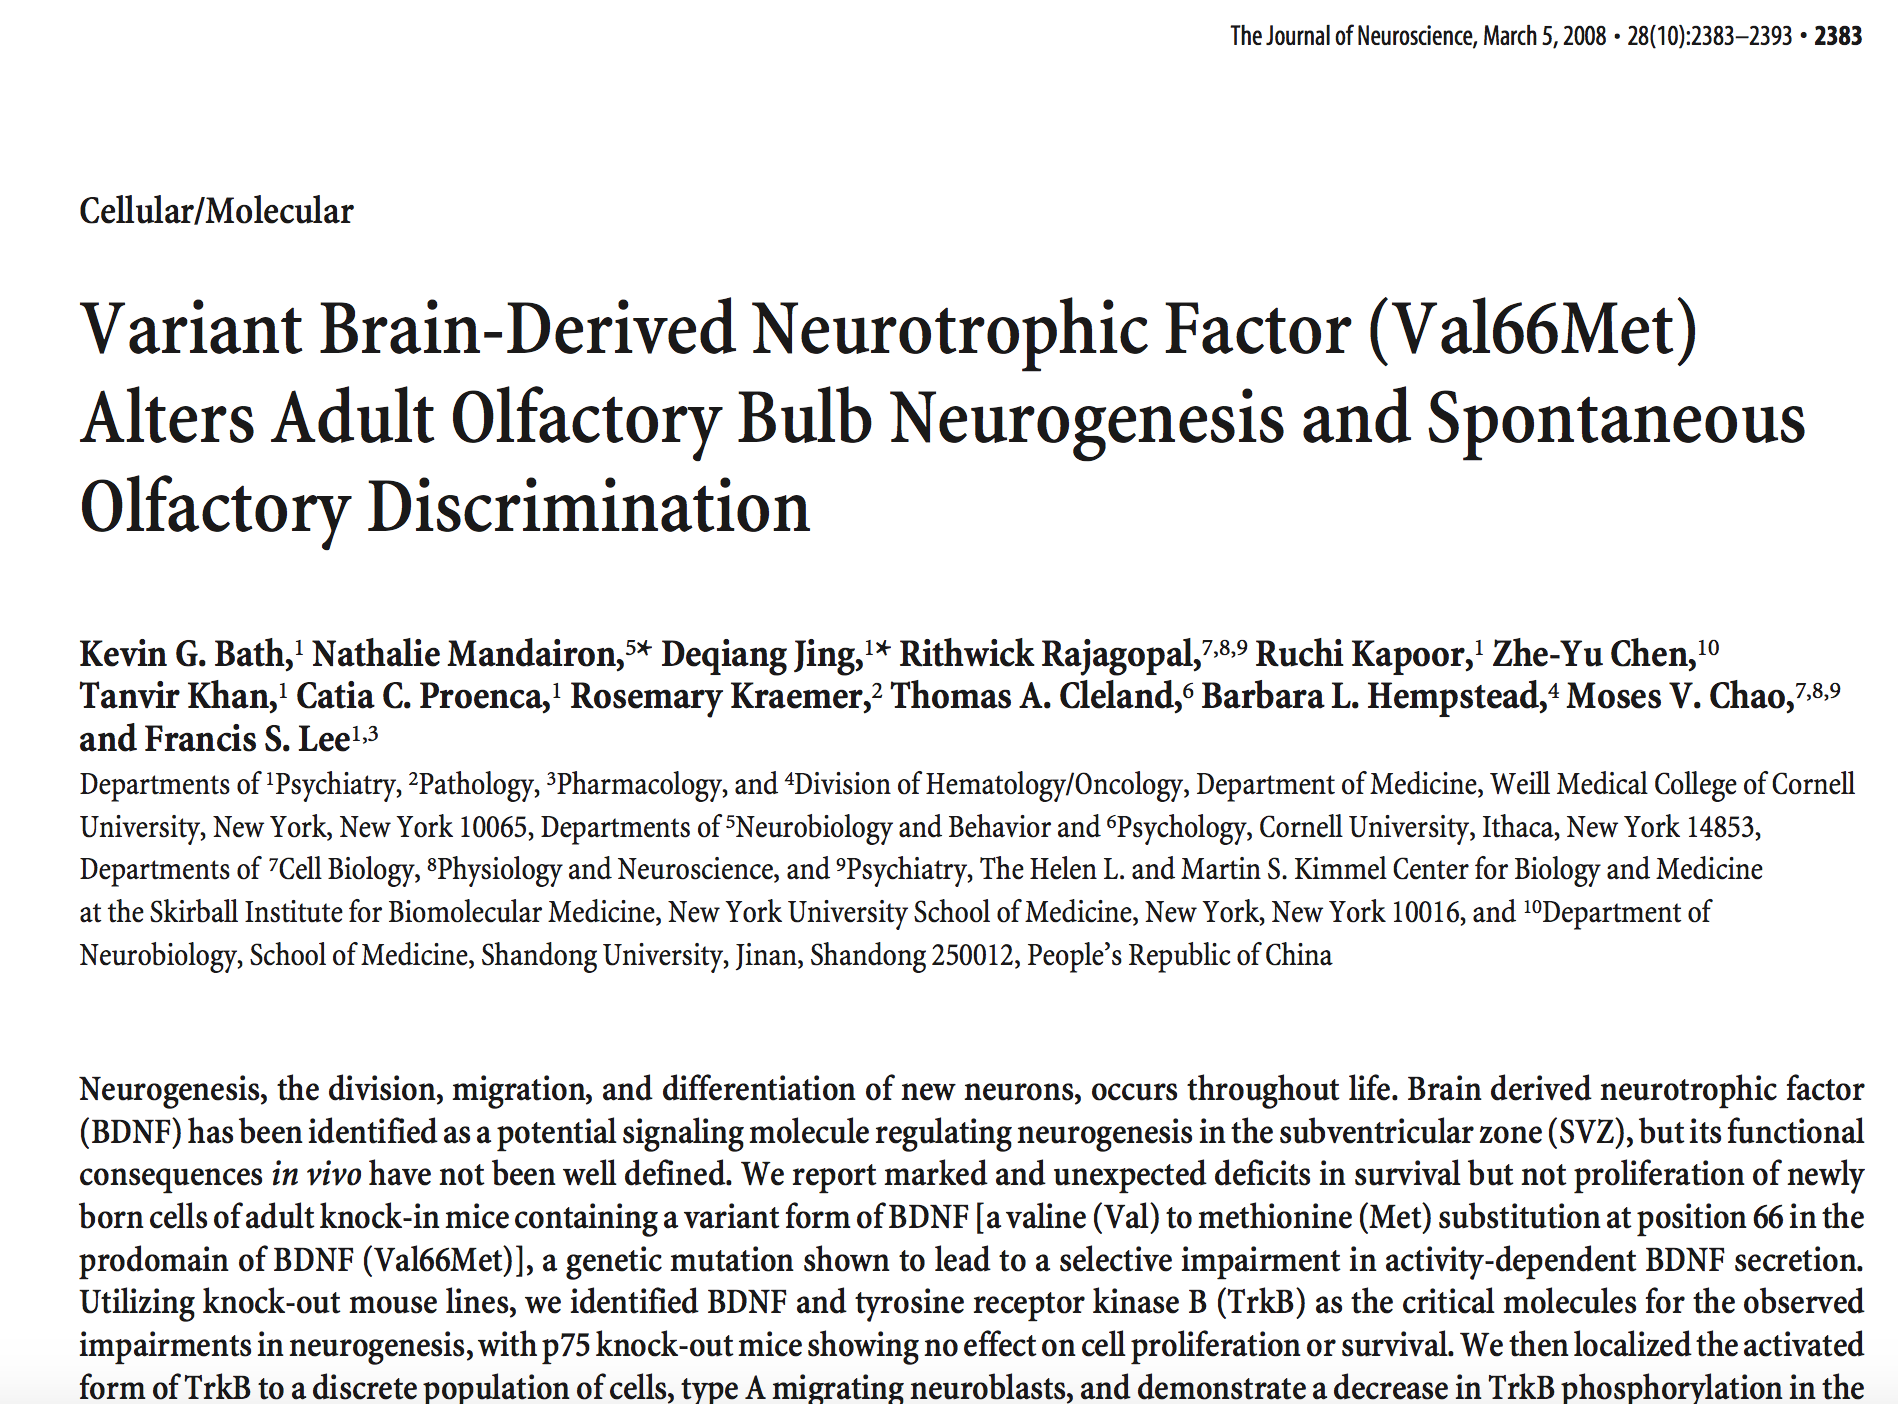 Bath et al., 2008.     Journal of Neuroscience.